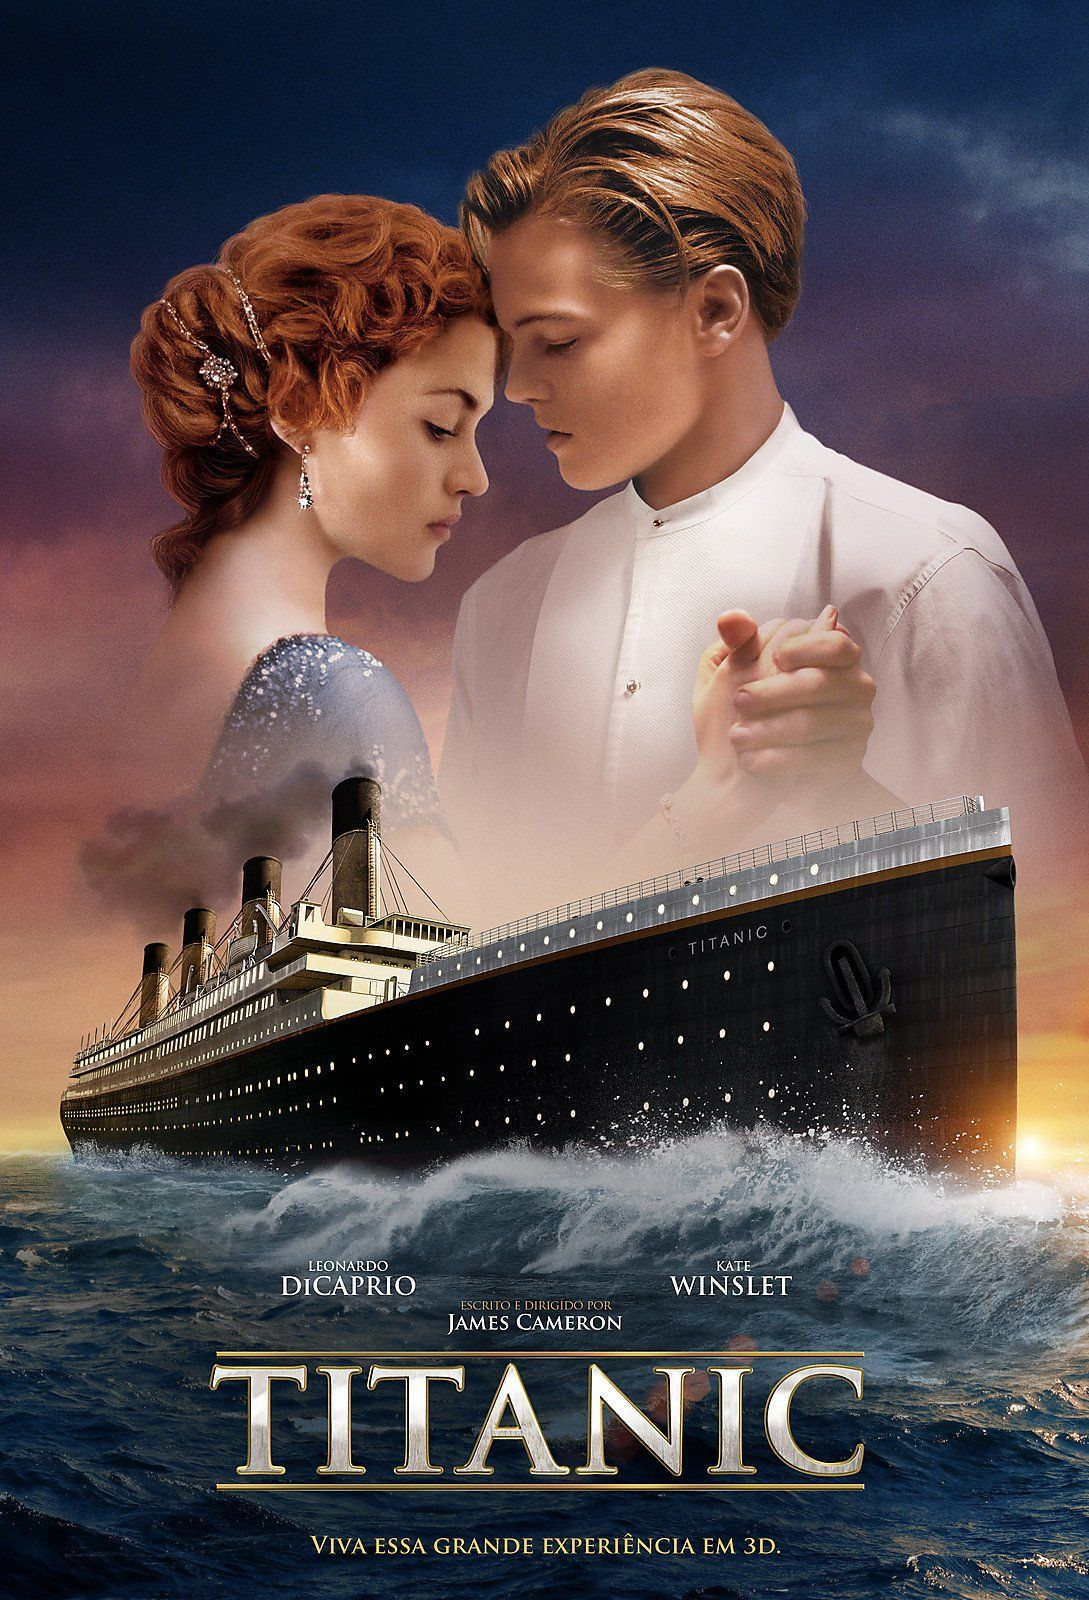 Titanic (1997) Hindi Dual Audio 720p BluRay [1.2GB]